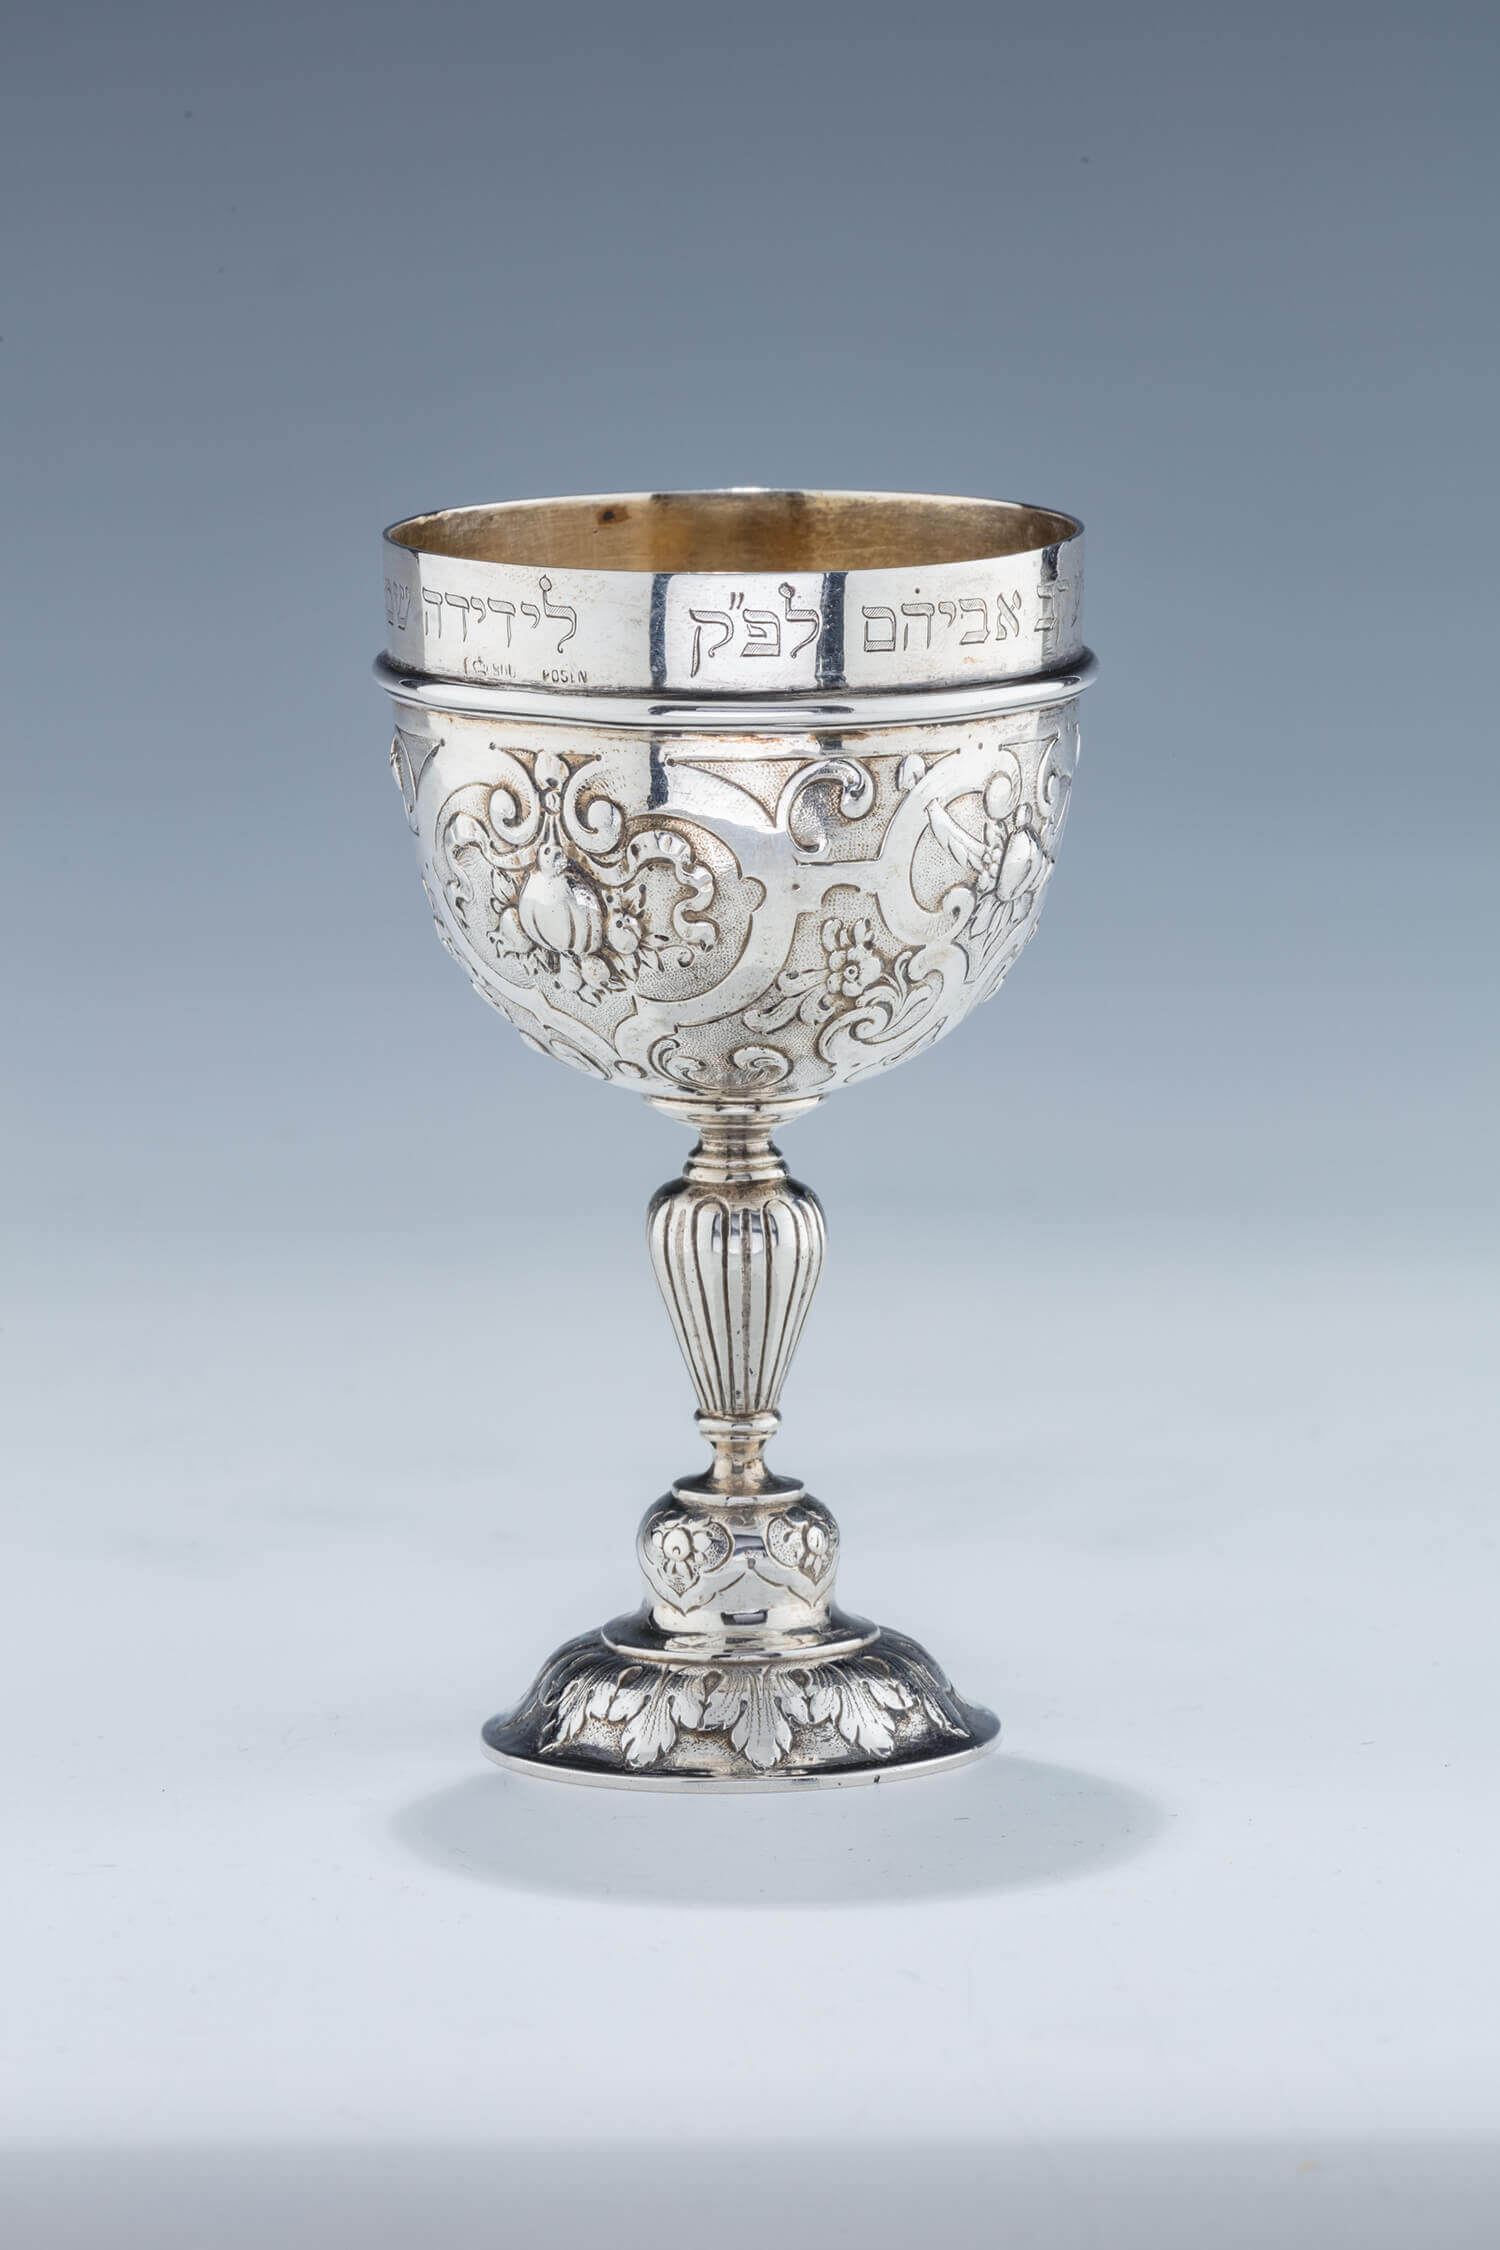 051. A LARGE SILVER KIDDUSH GOBLET BY LAZARUS POSEN